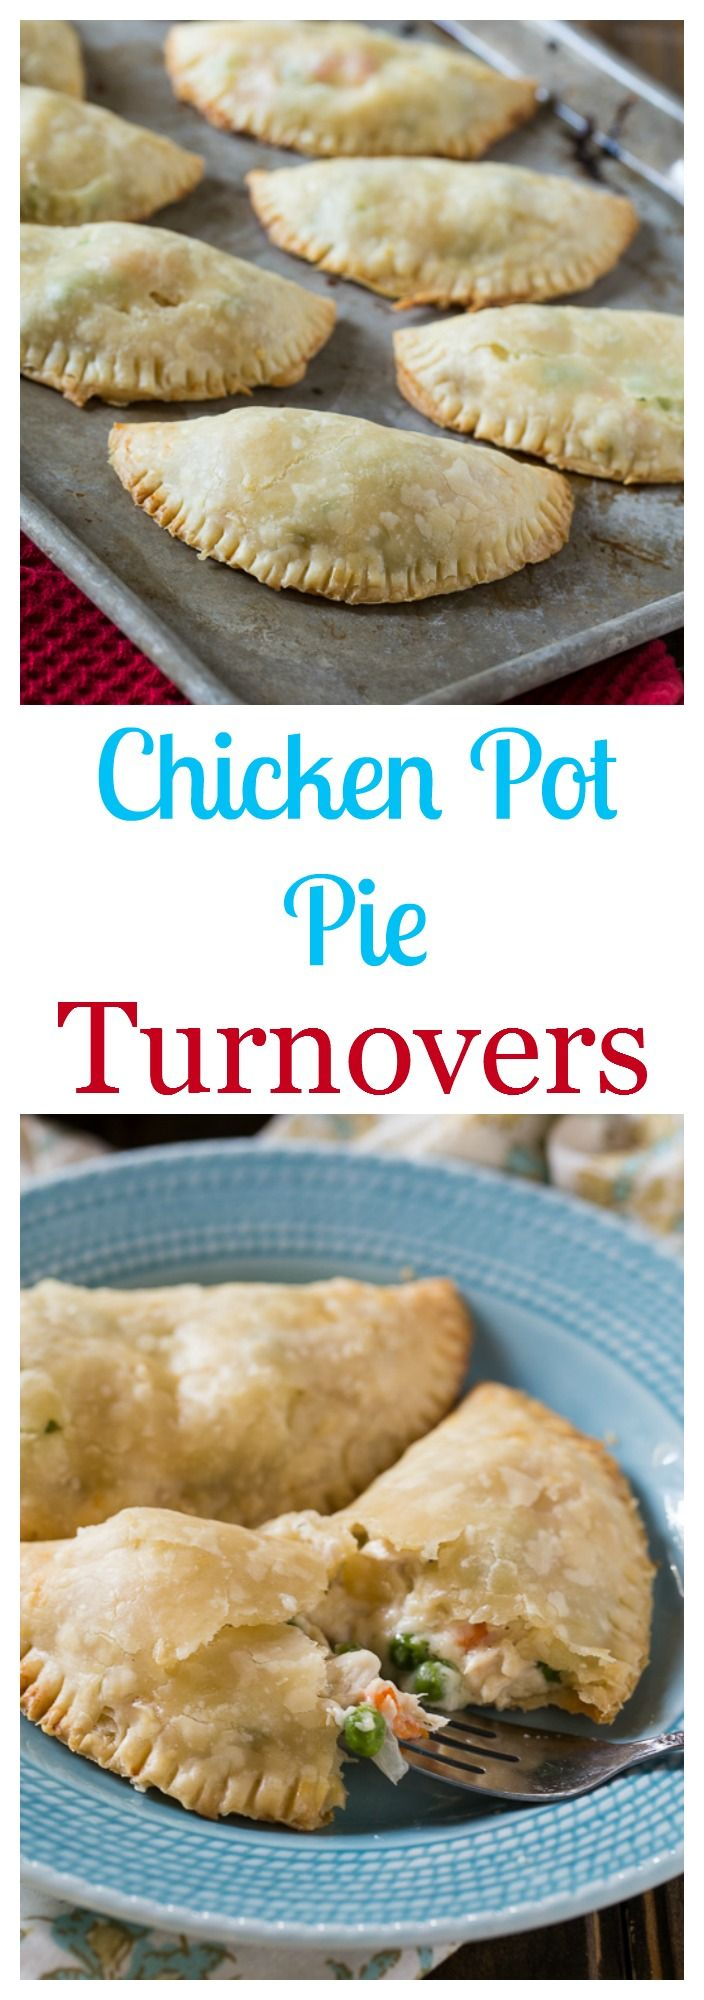 Easy Chicken Pot Pie Turnovers Made With Refrigerated Pie Crusts Lunch Or Dinner Easy